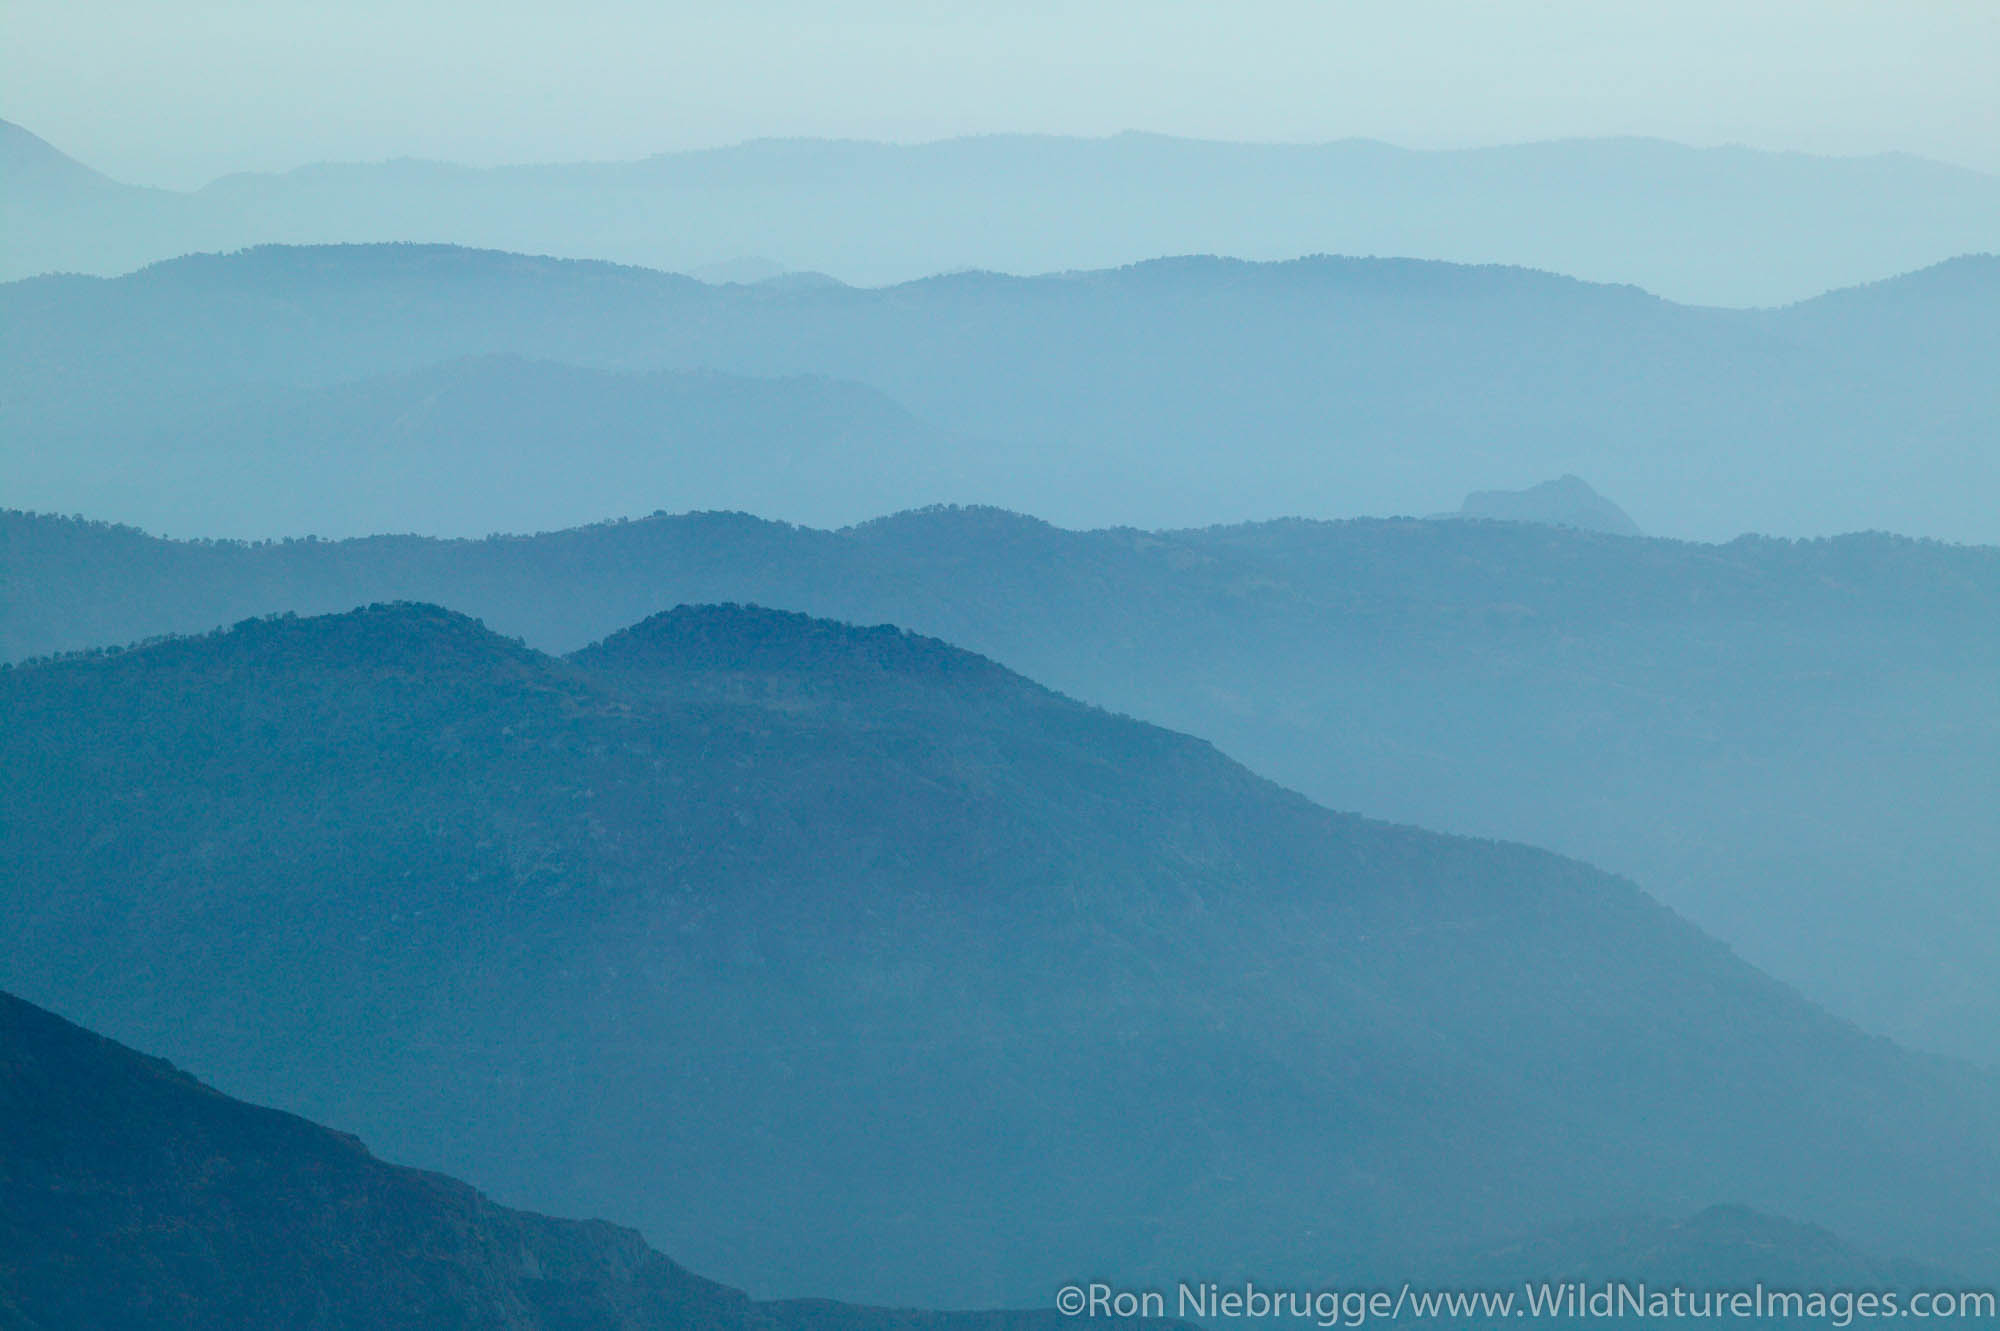 Looking towards the Central Valley from Moro Rock, Sequoia National Park, California.